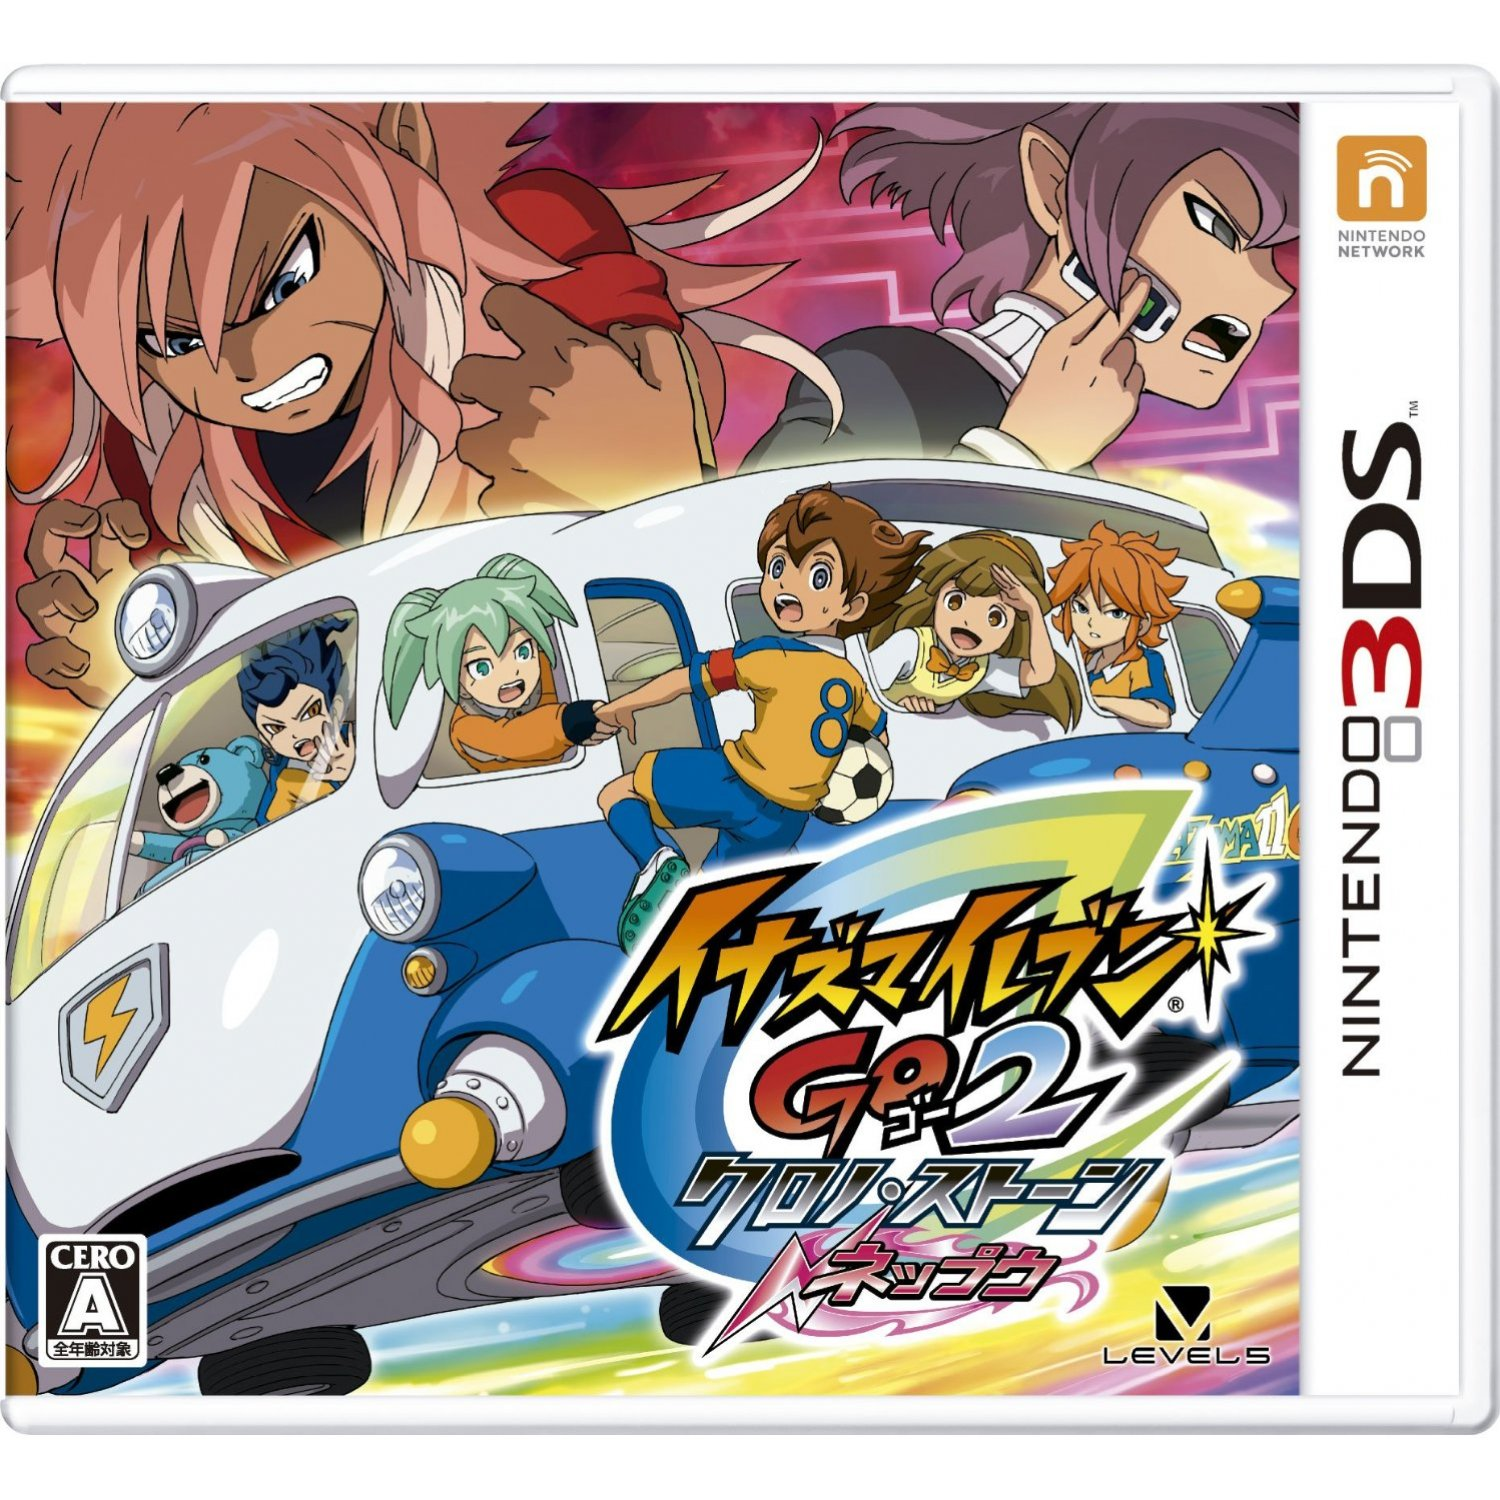 Inazuma Eleven Strikers Pics, Video Game Collection